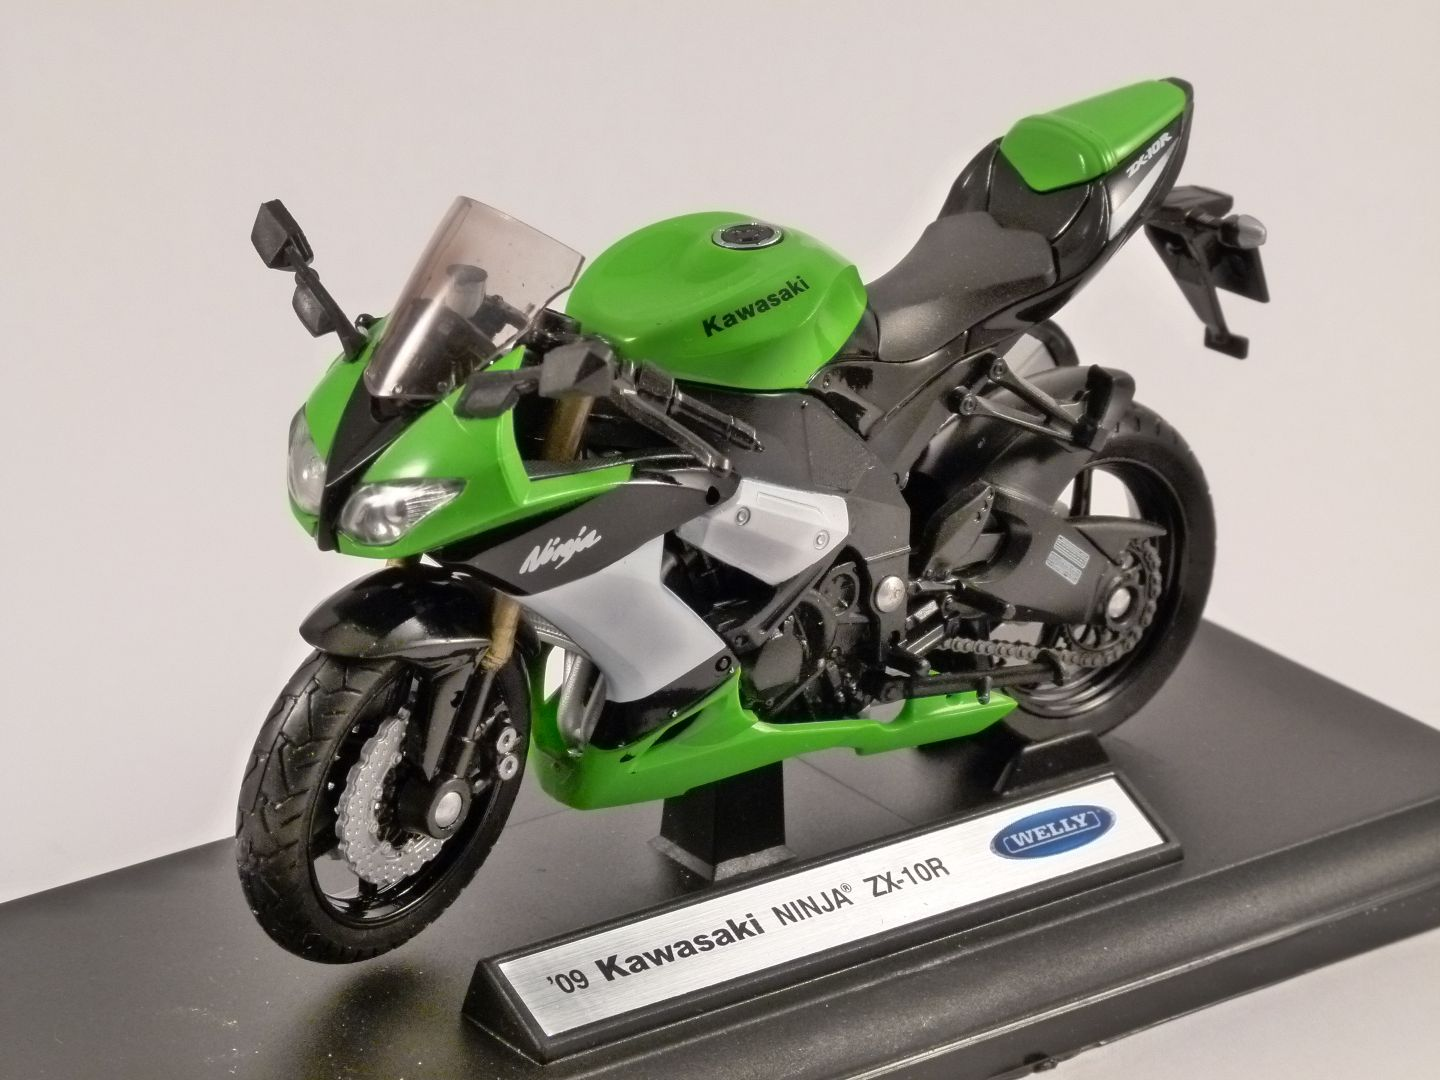 KAWASAKI NINJA ZX-10R in Green 1/18 scale model by WELLY